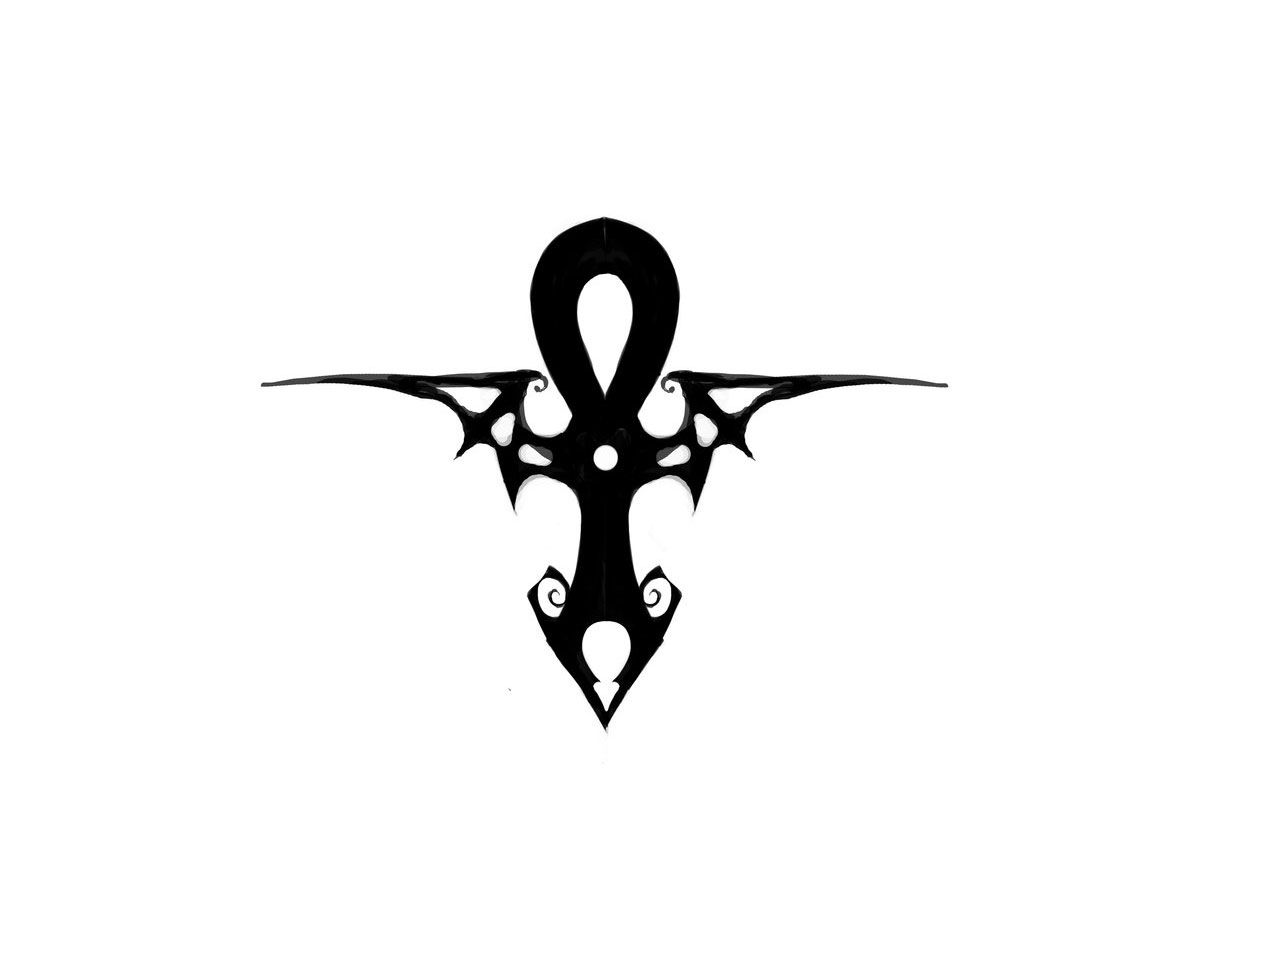 Gothic Designs free designs - gothic sign tattoo wallpaper | resources